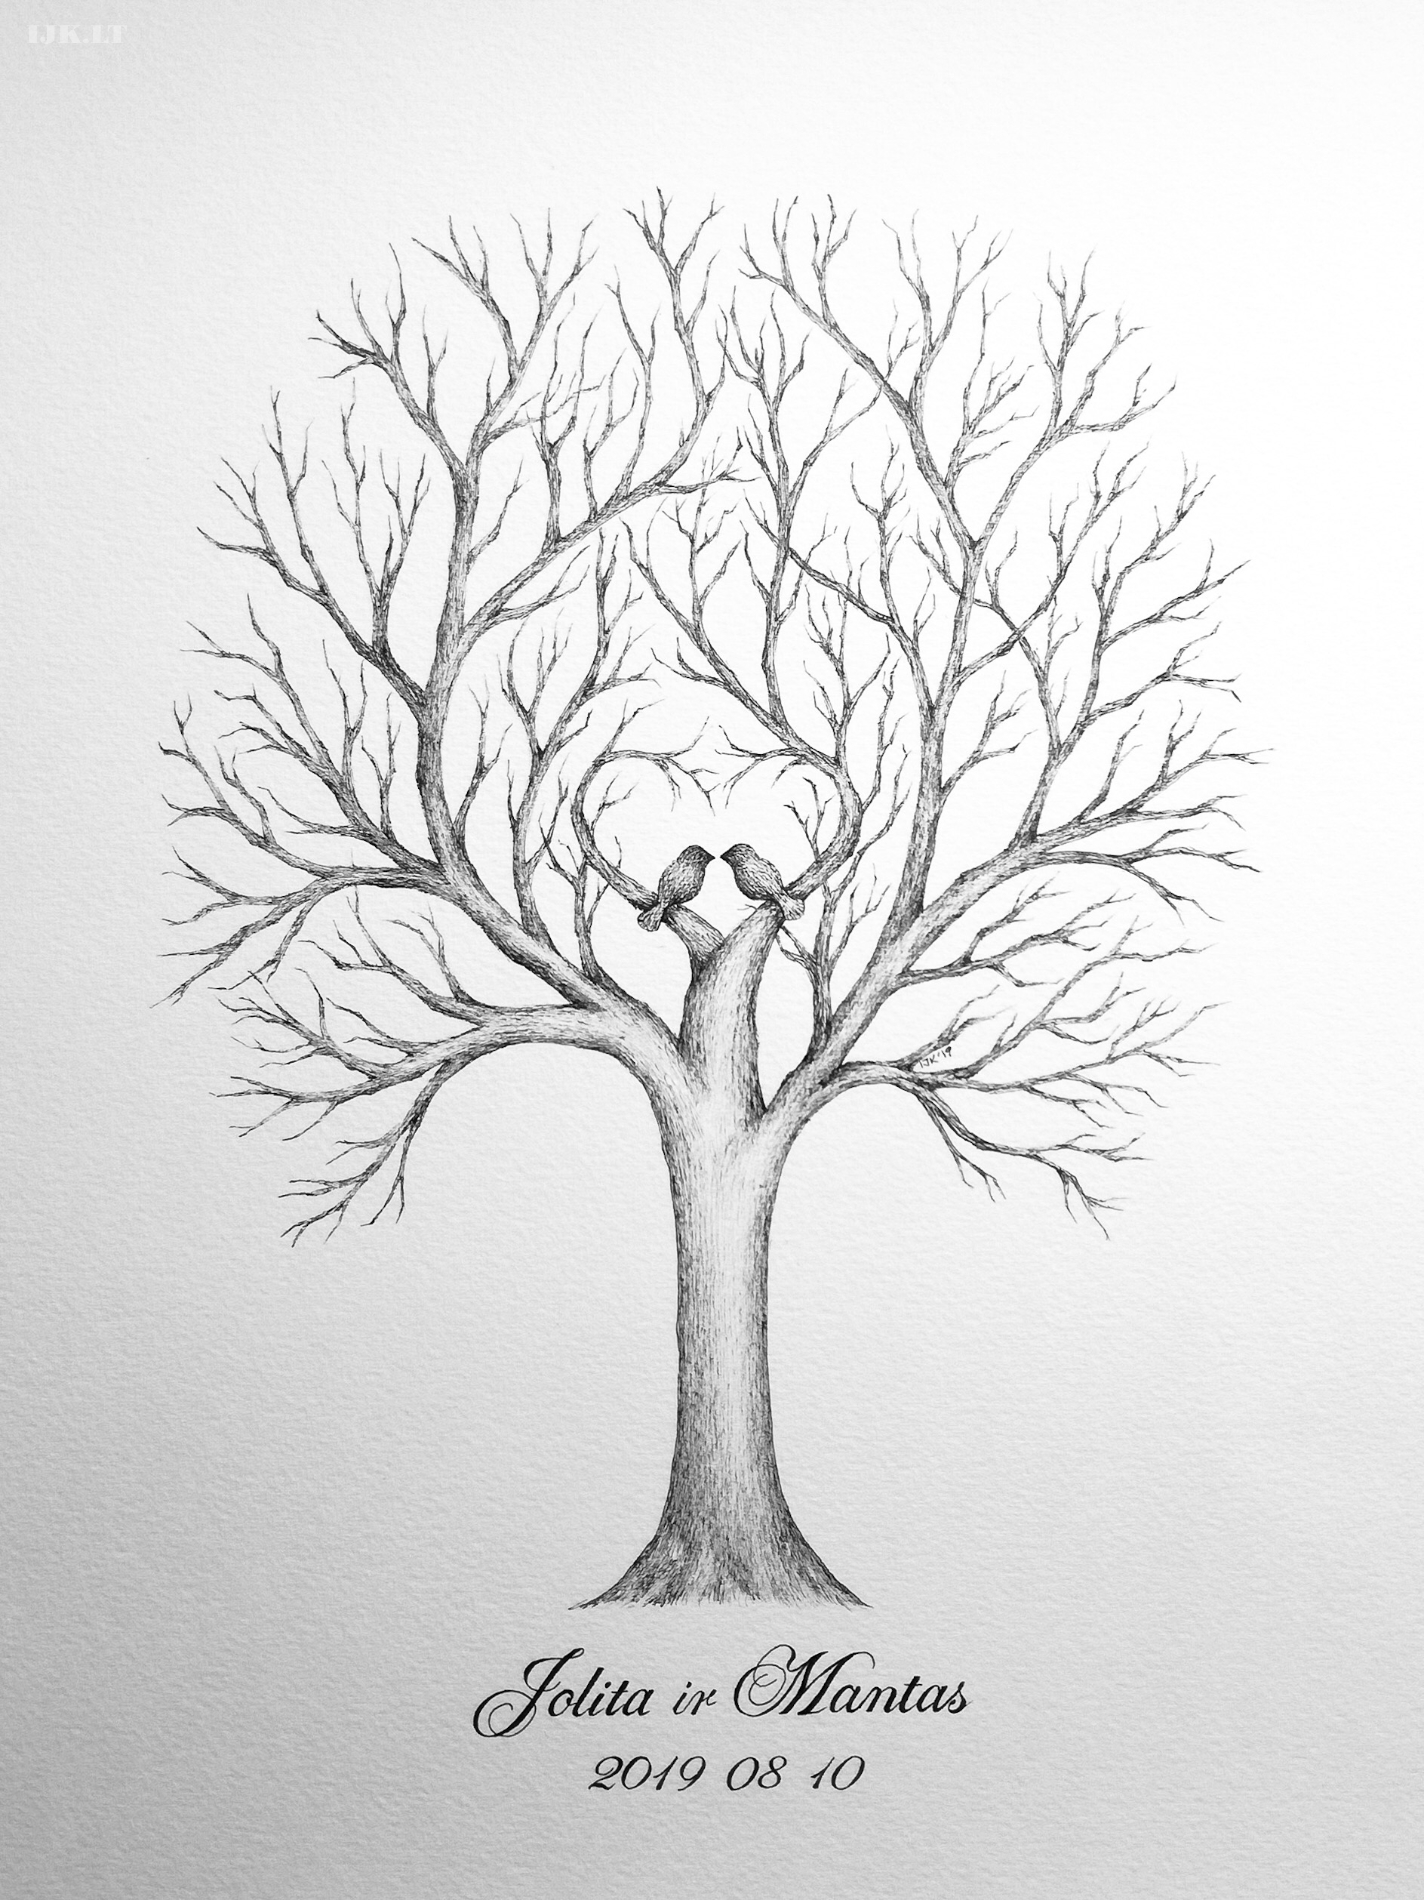 Picture for guests fingerprints and wishes, wedding tree, alternative guest book